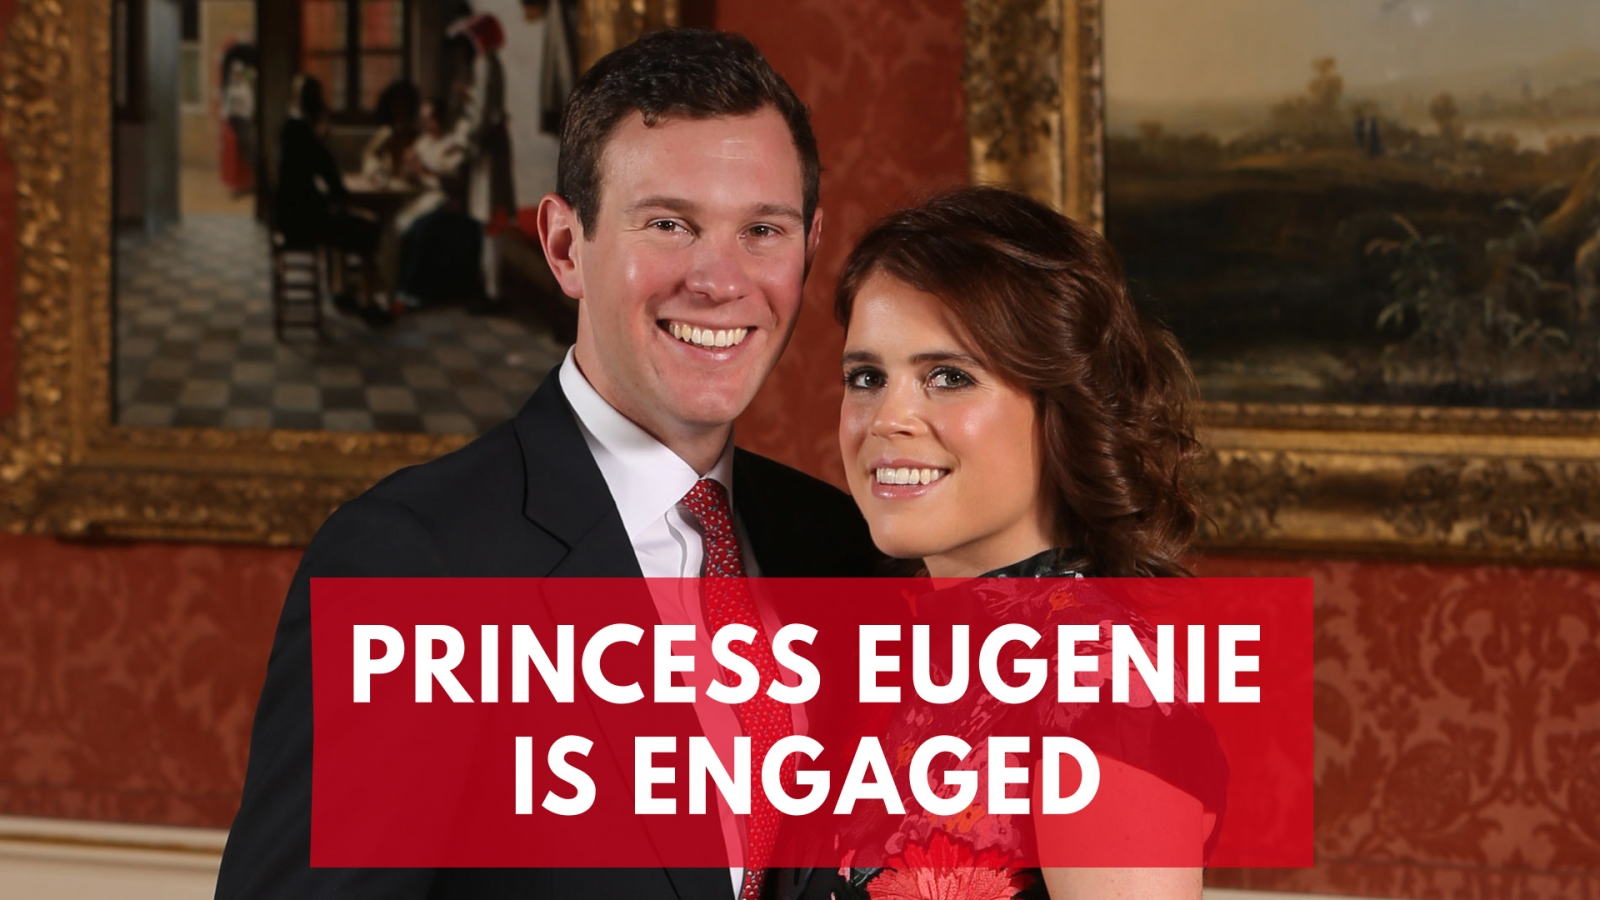 princess-eugenie-engaged-to-jack-brooksbank